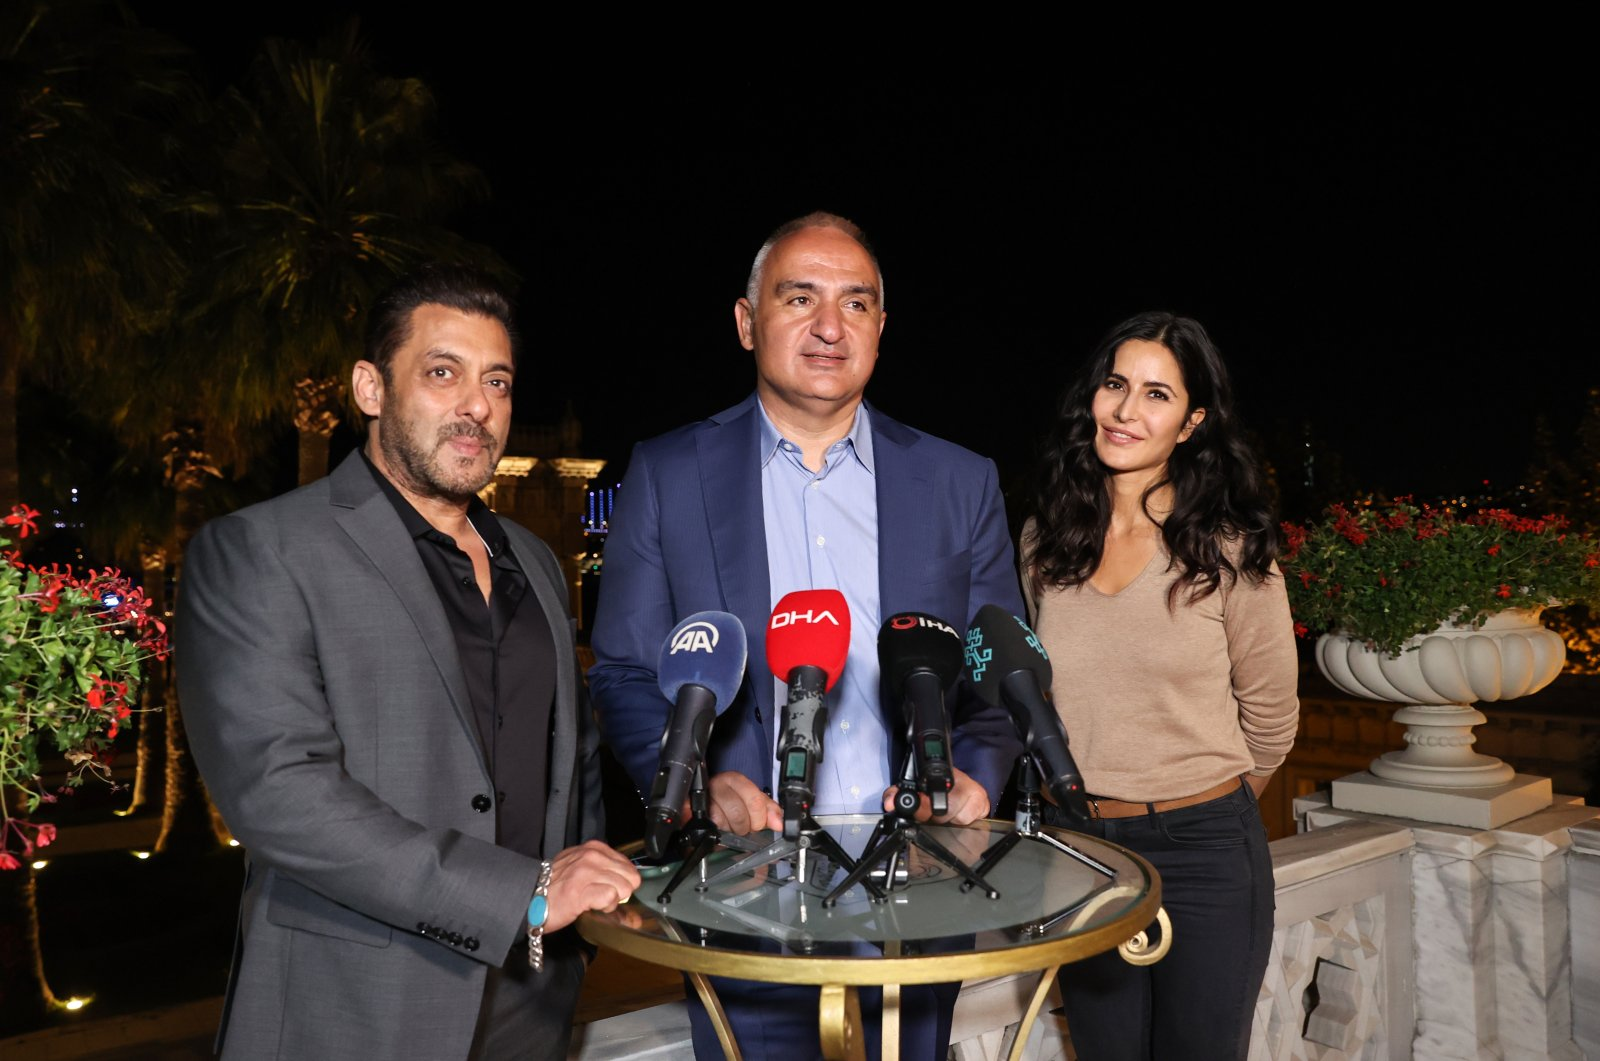 Culture and Tourism Minister Mehmet Nuri Ersoy (C) meets with Indian actors Katrina Kaif (R) and Salman Khan (L) at Çırağan Palace in Istanbul, Turkey, Sept. 3, 2021. (AA Photo)